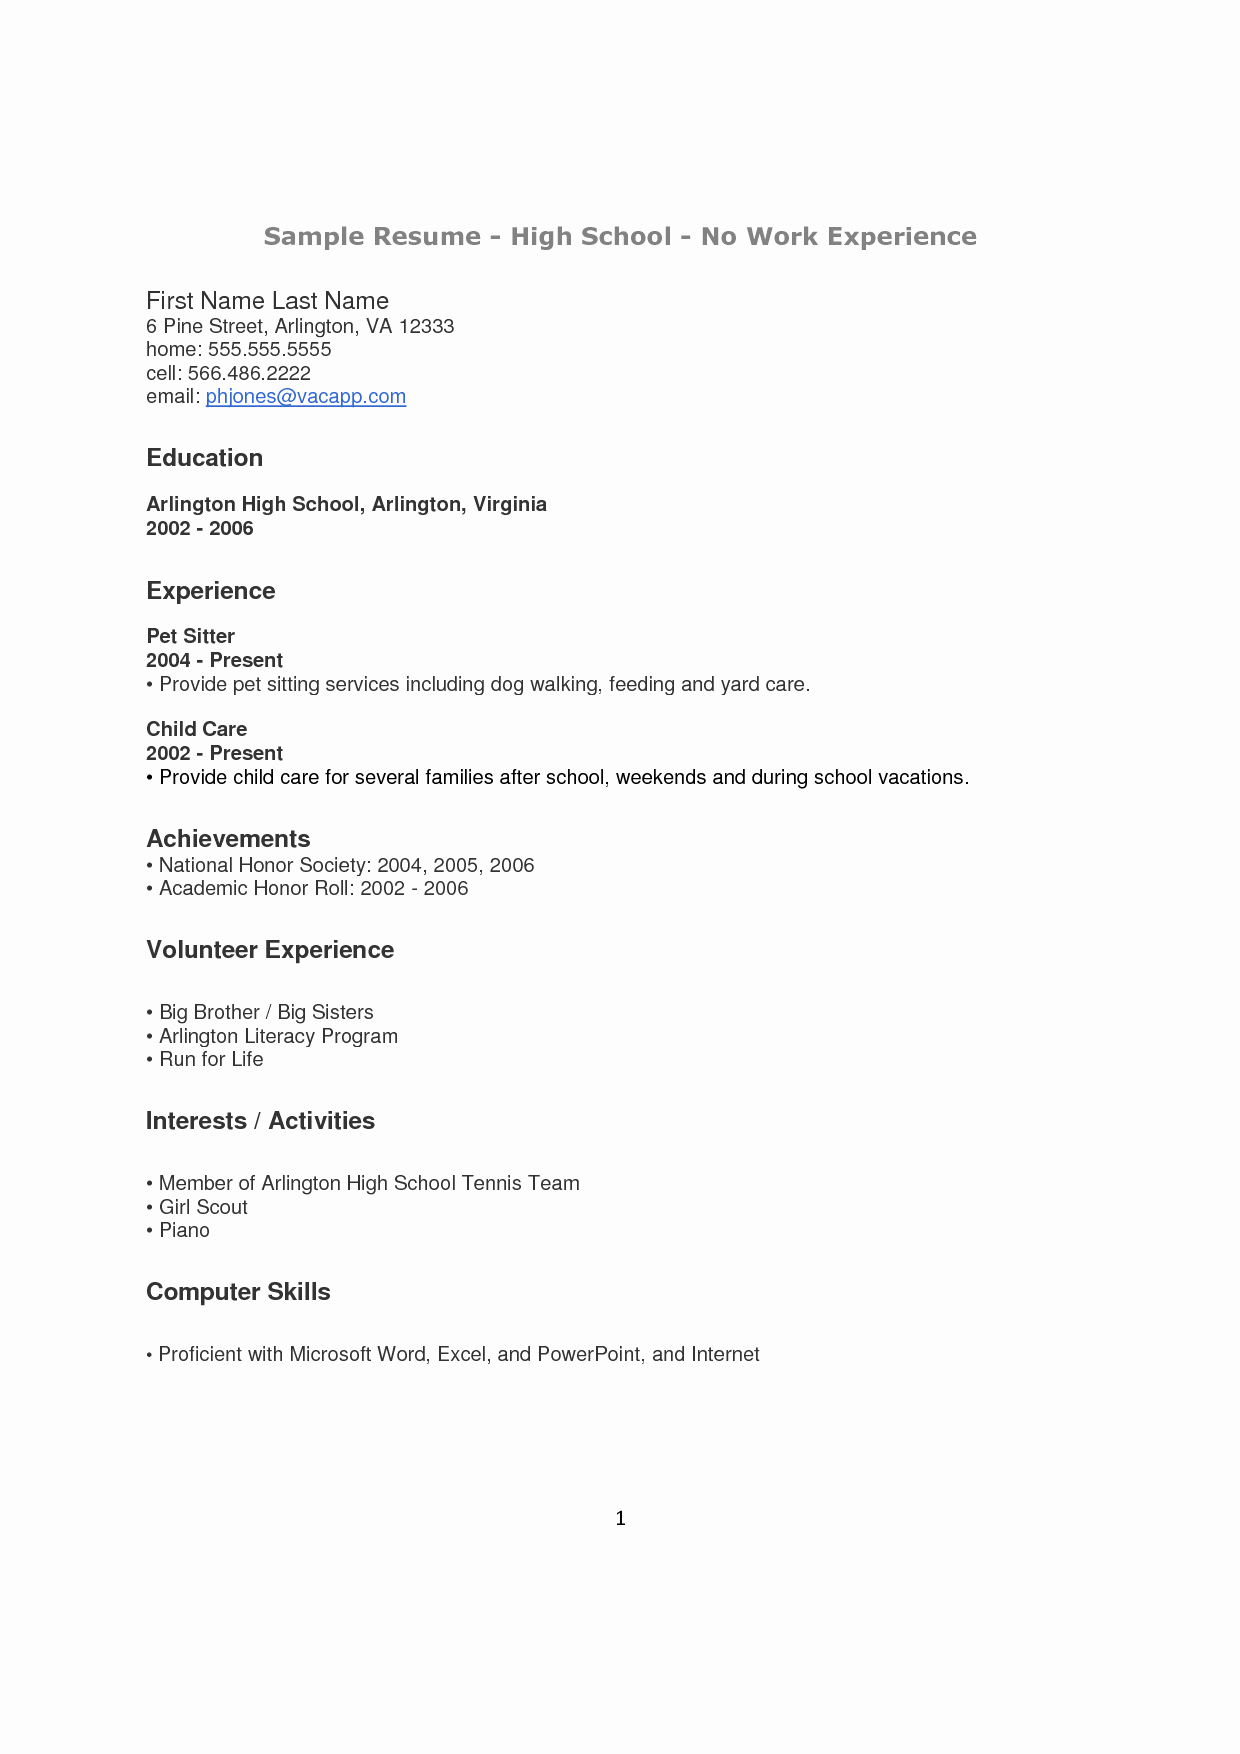 Resume Examples for Highschool Students Beautiful How to Make A Resume for A Highschool Student with No